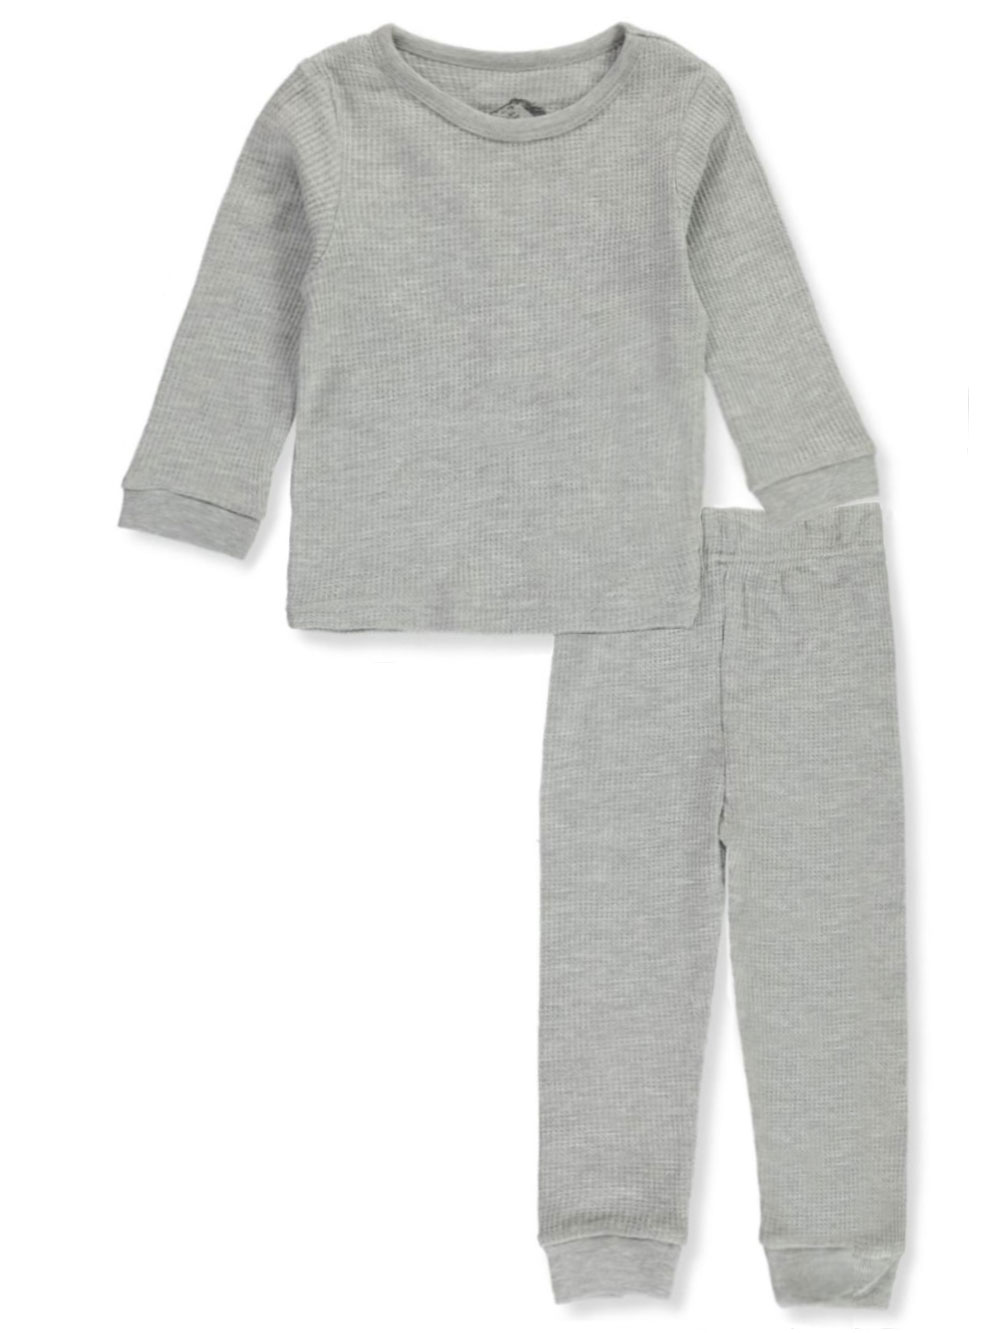 Gray and White Sleepwear